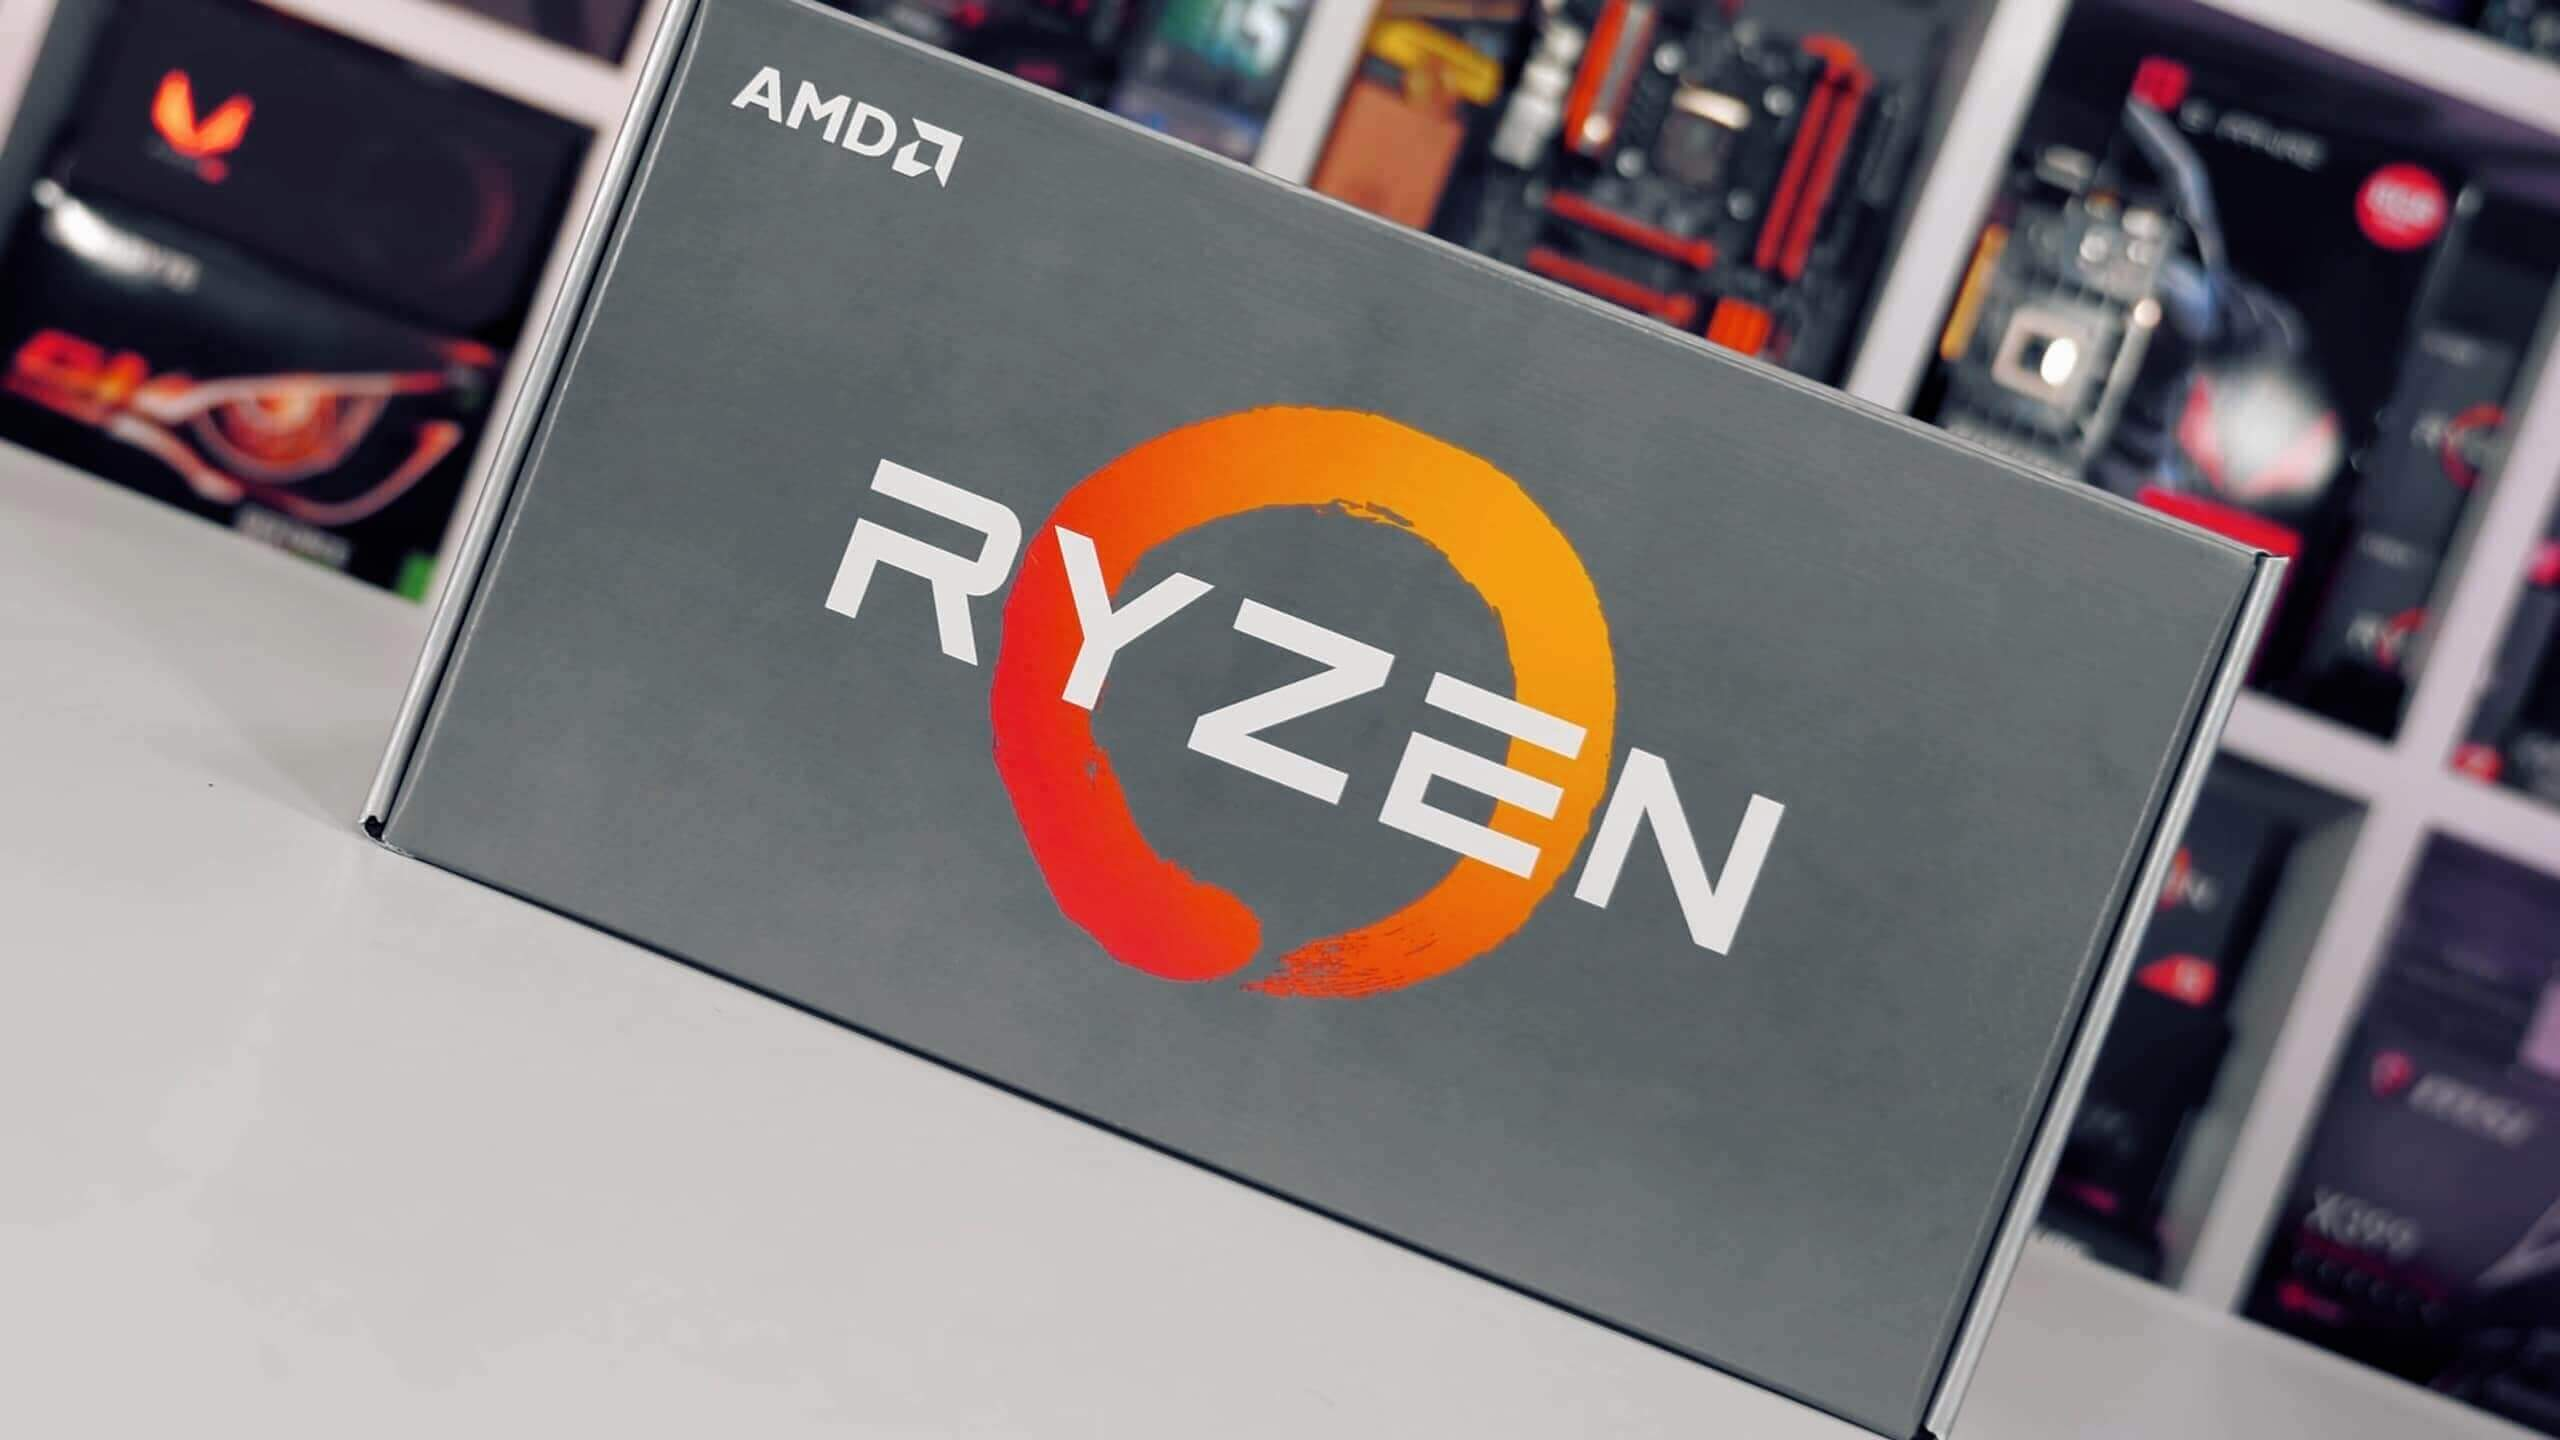 AMD's CPUs lose ground to Intel, Windows 7 gains users in latest Steam Survey